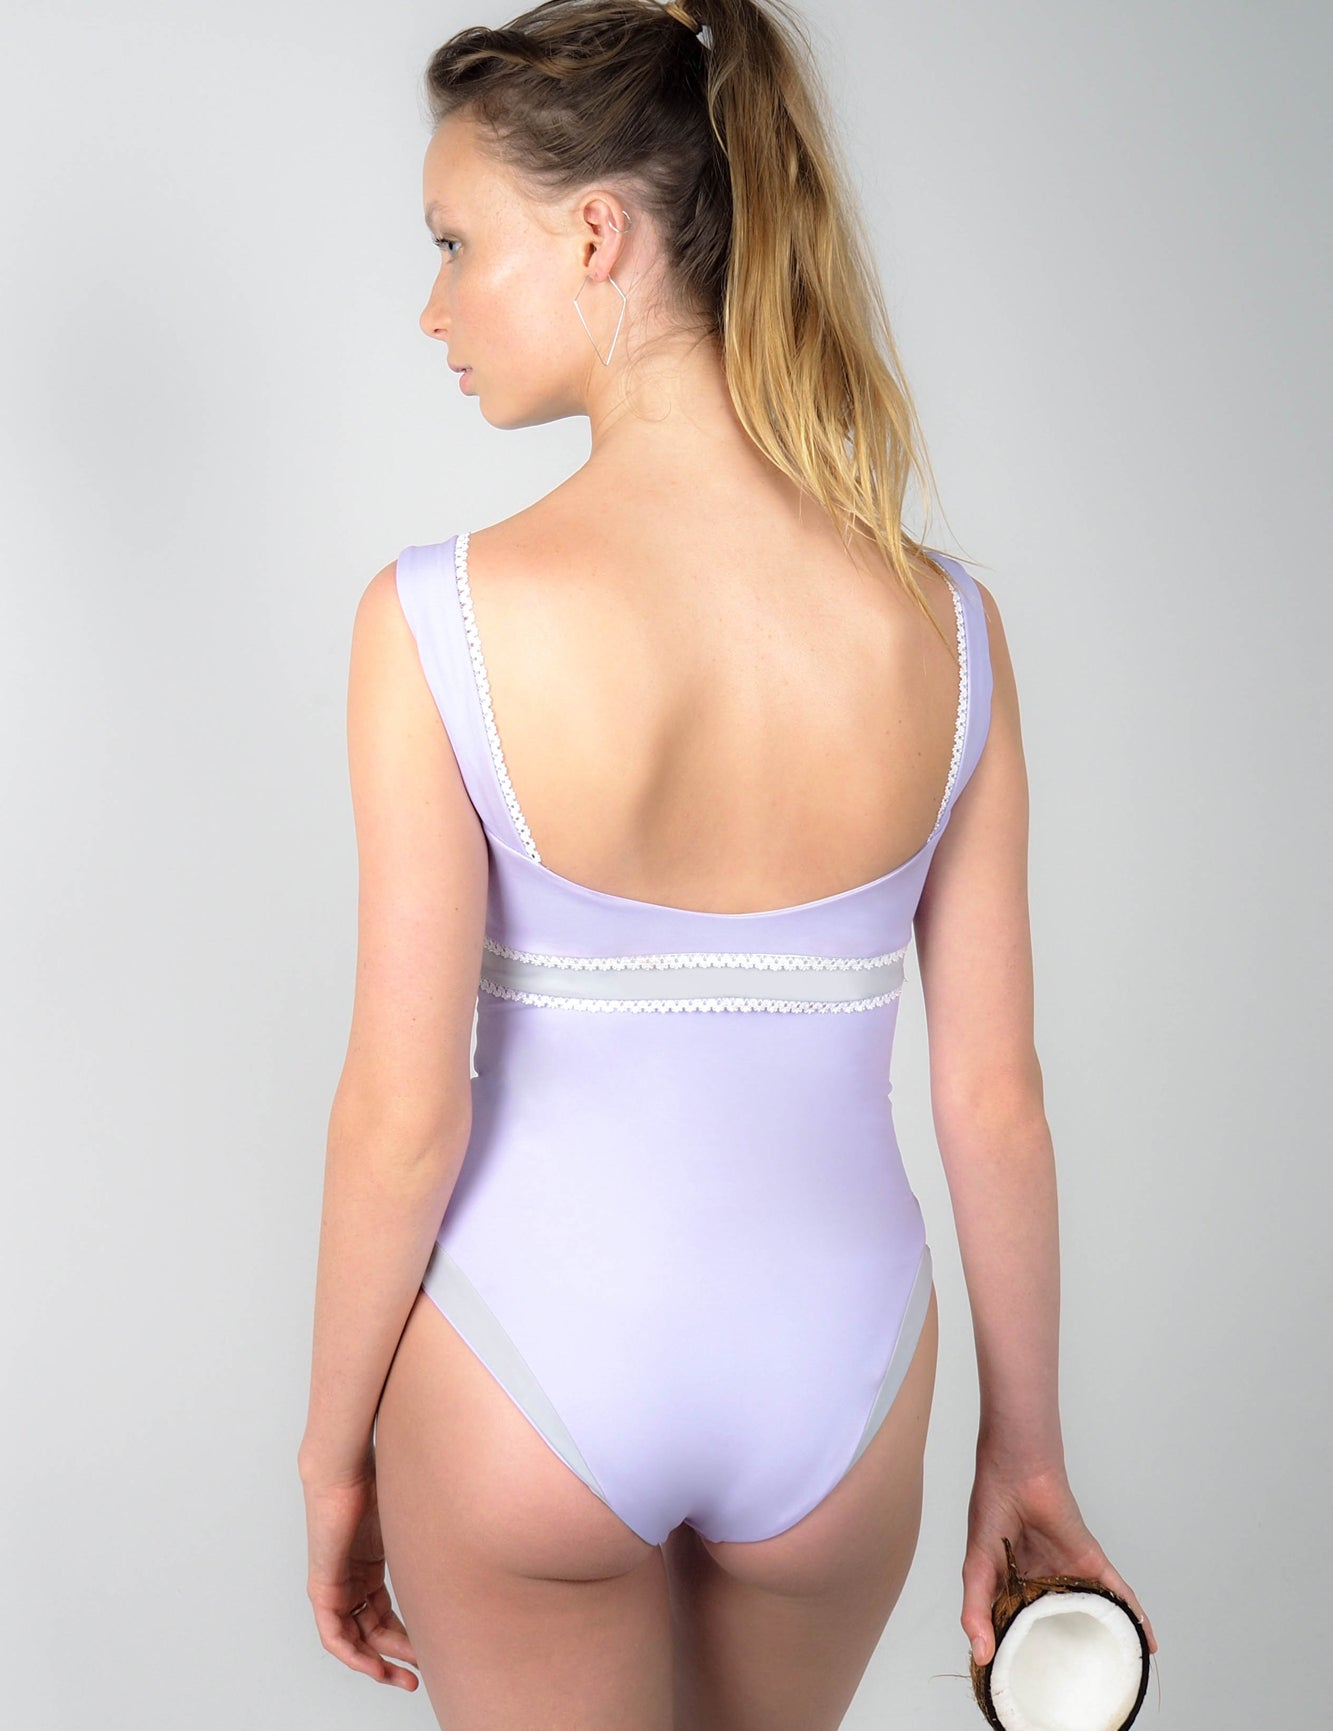 The Thumbelina One Piece